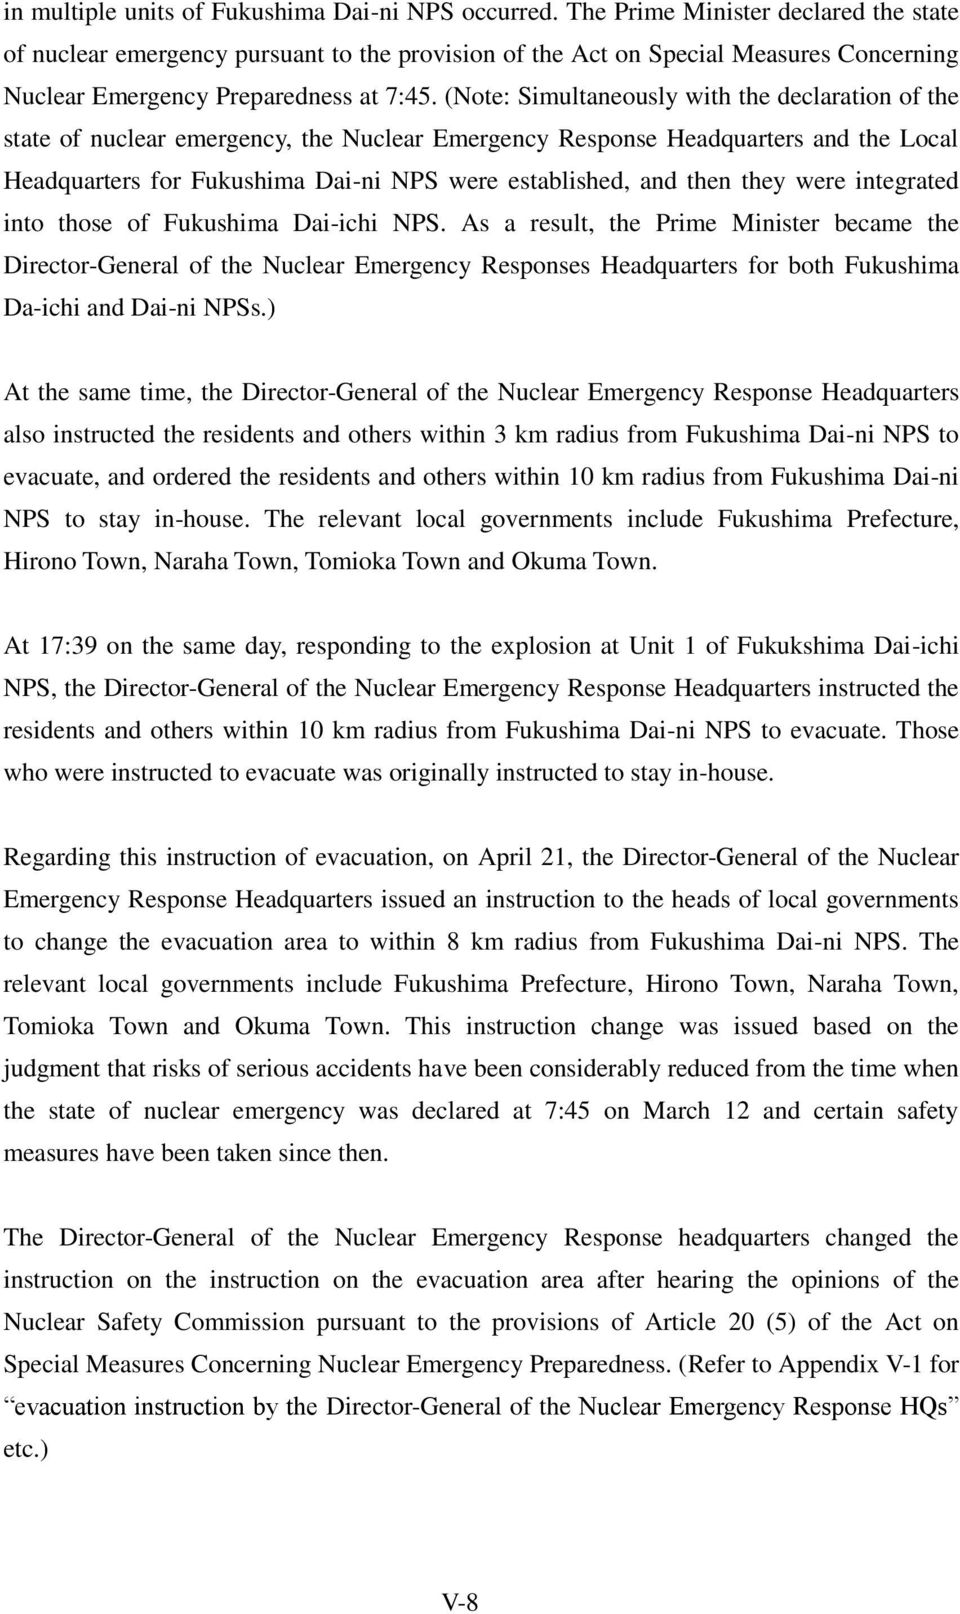 (Note: Simultaneously with the declaration of the state of nuclear emergency, the Nuclear Emergency Response Headquarters and the Local Headquarters for Fukushima Dai-ni NPS were established, and